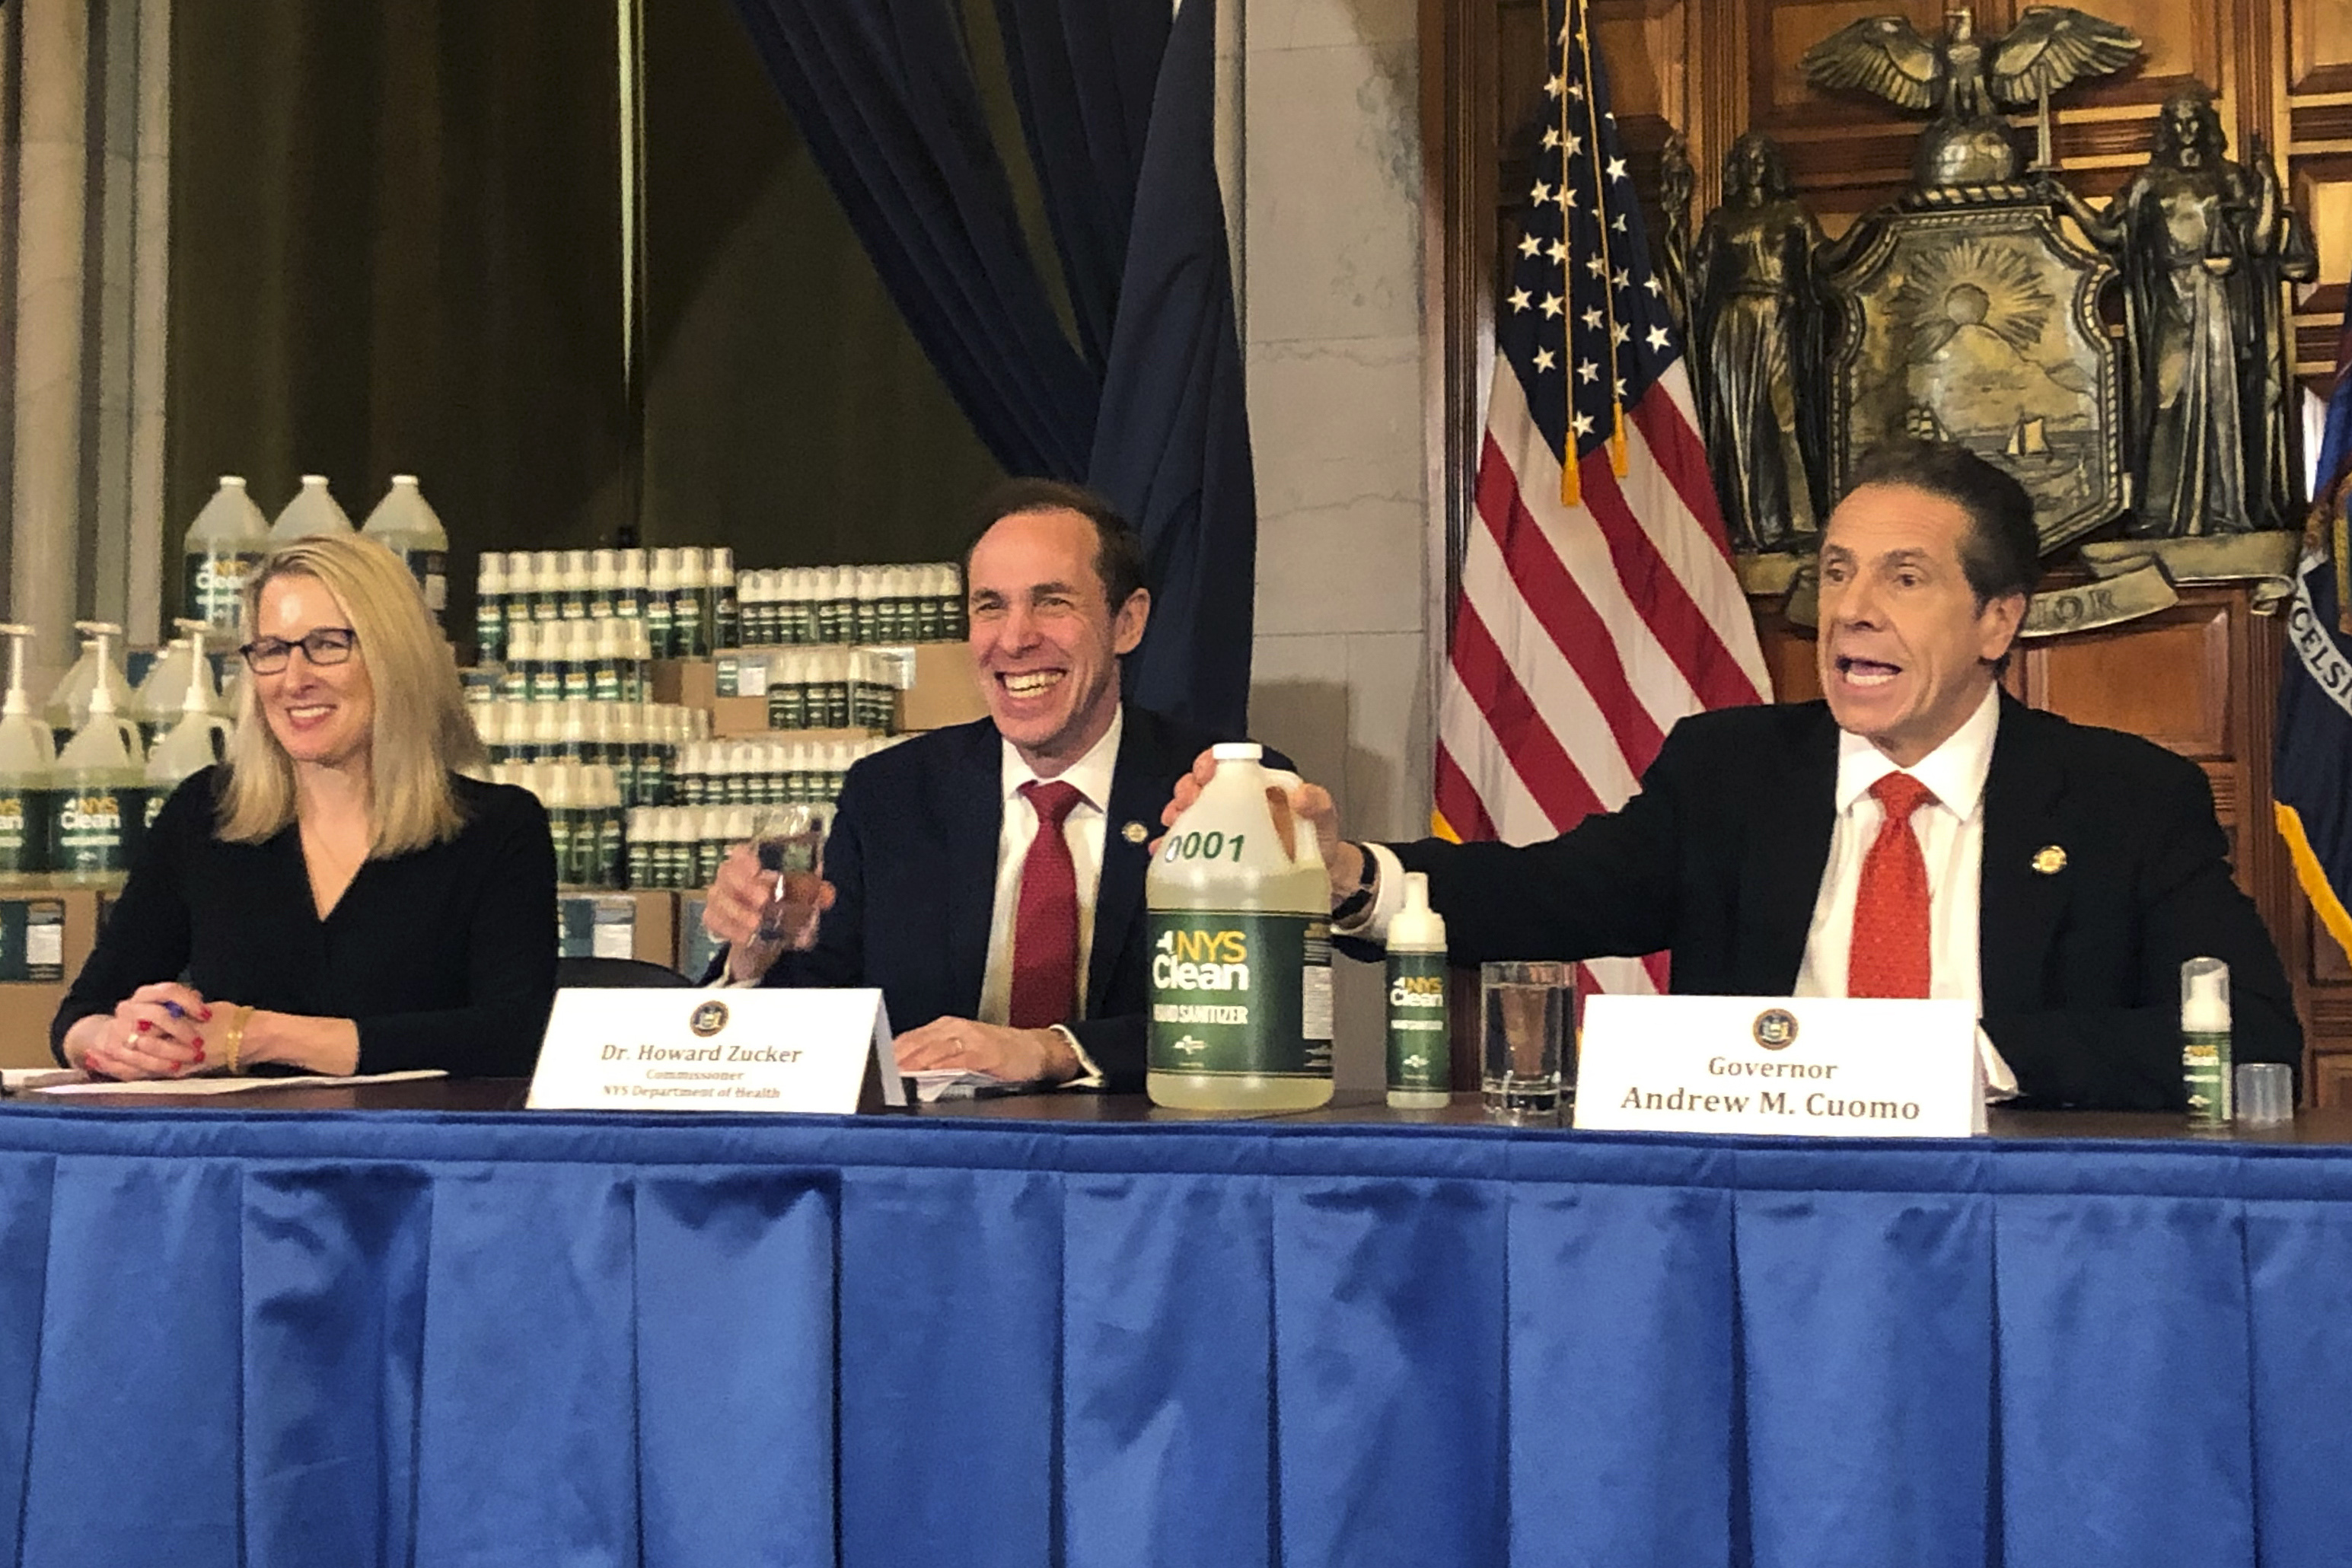 New York Gov. Andrew Cuomo, right, introduces  New York State Clean,  a hand sanitizer manufactured by the state of New York in response to shortages of the alcohol- based substance, during a news conference update on the coronavirus, Monday, March 9, 2020, in Albany, N.Y.